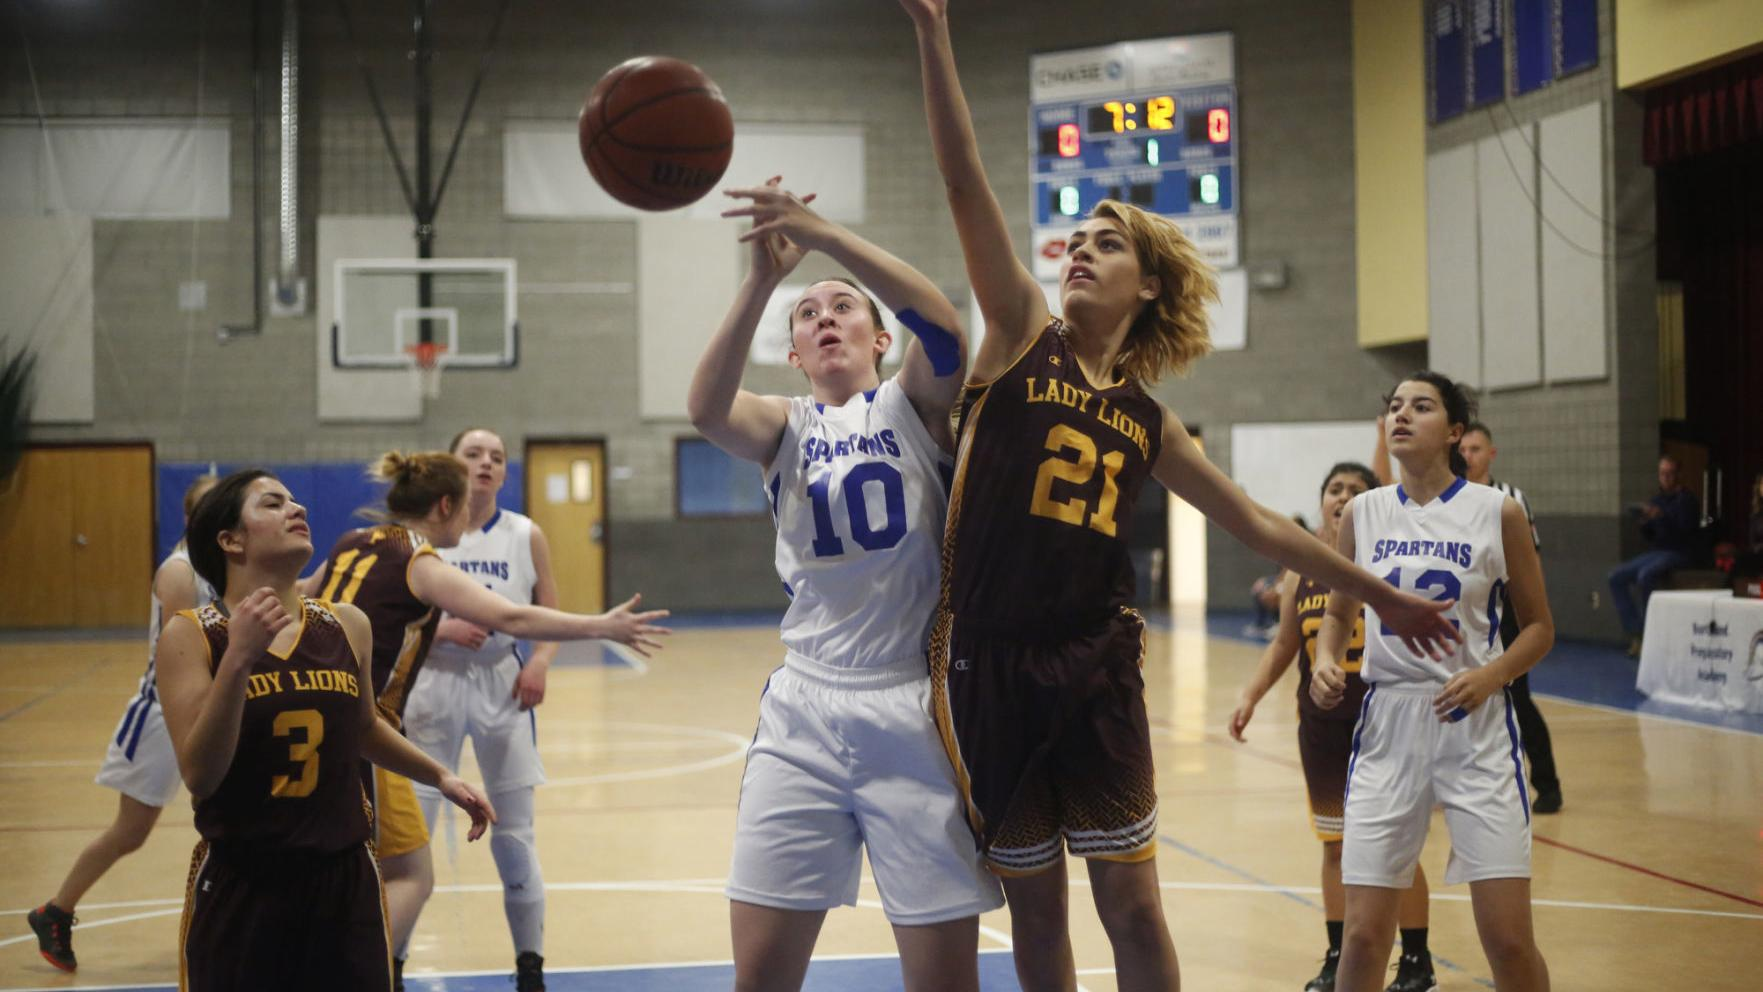 Northland Prep girls hoops steps on gas in 2nd half to get 3rd straight win